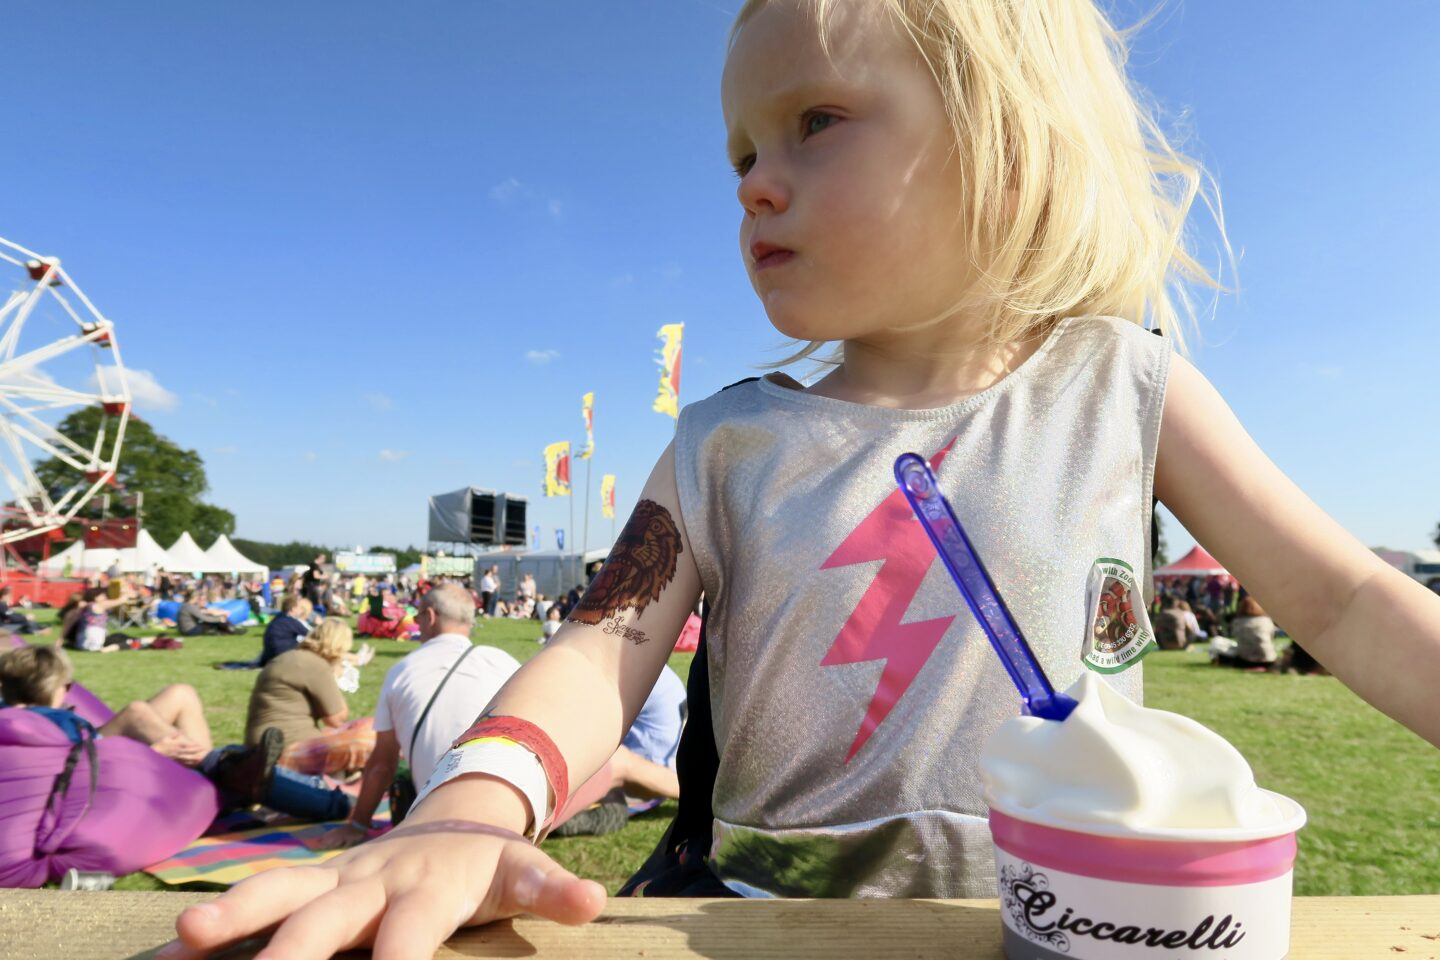 Top 5 family-friendly music camping festivals near North East England in 2019